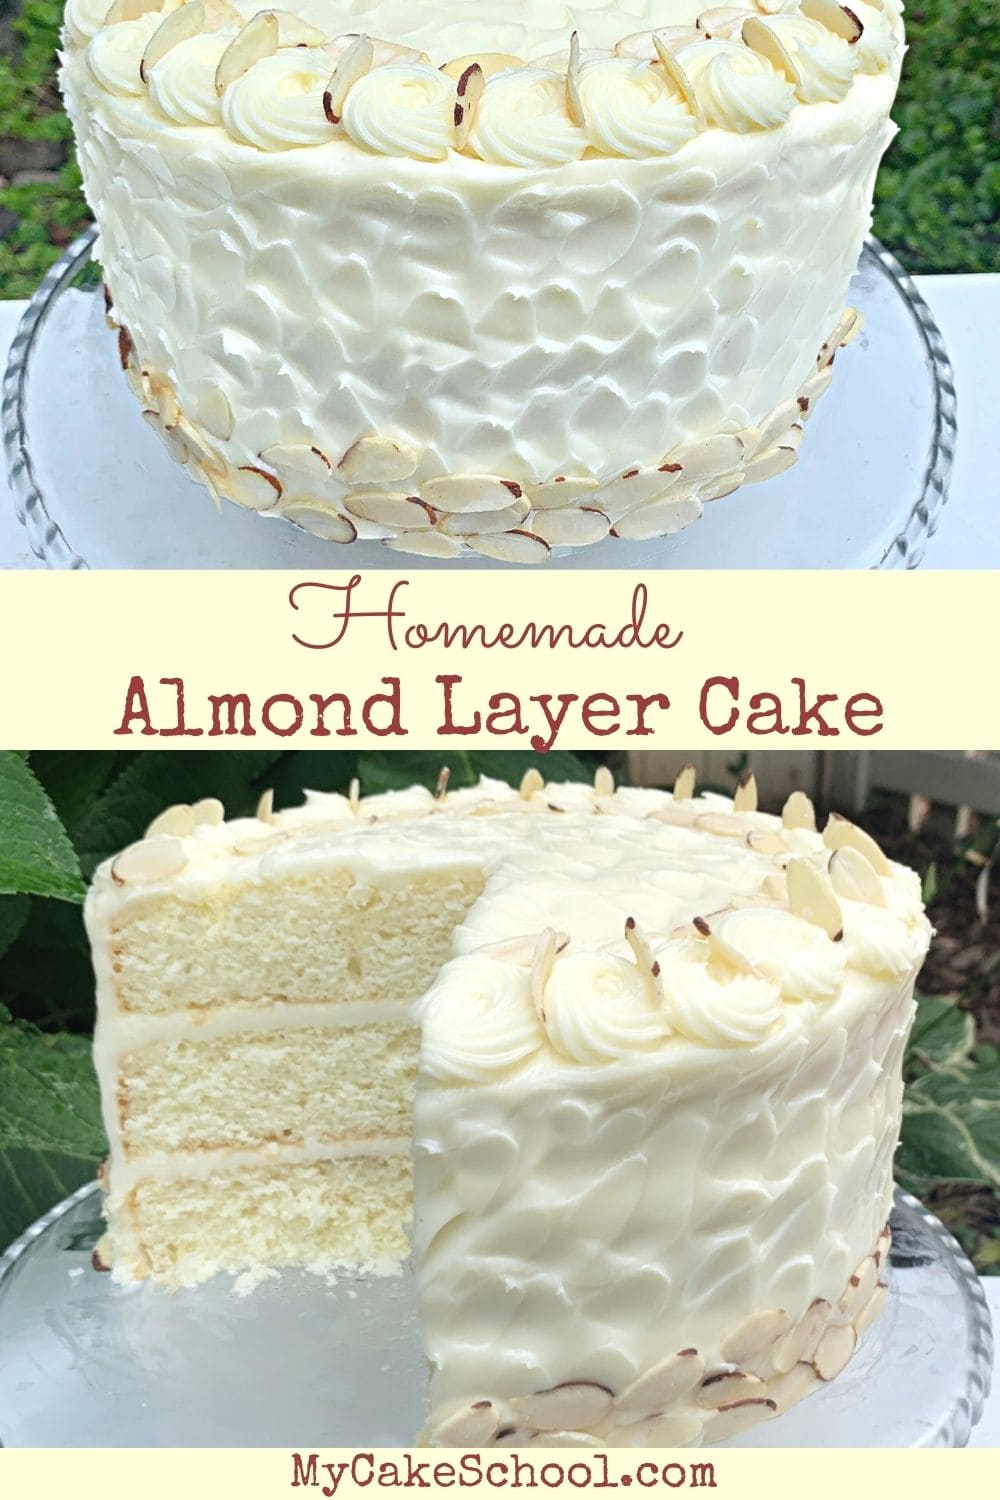 This Almond Cake recipe is the BEST!